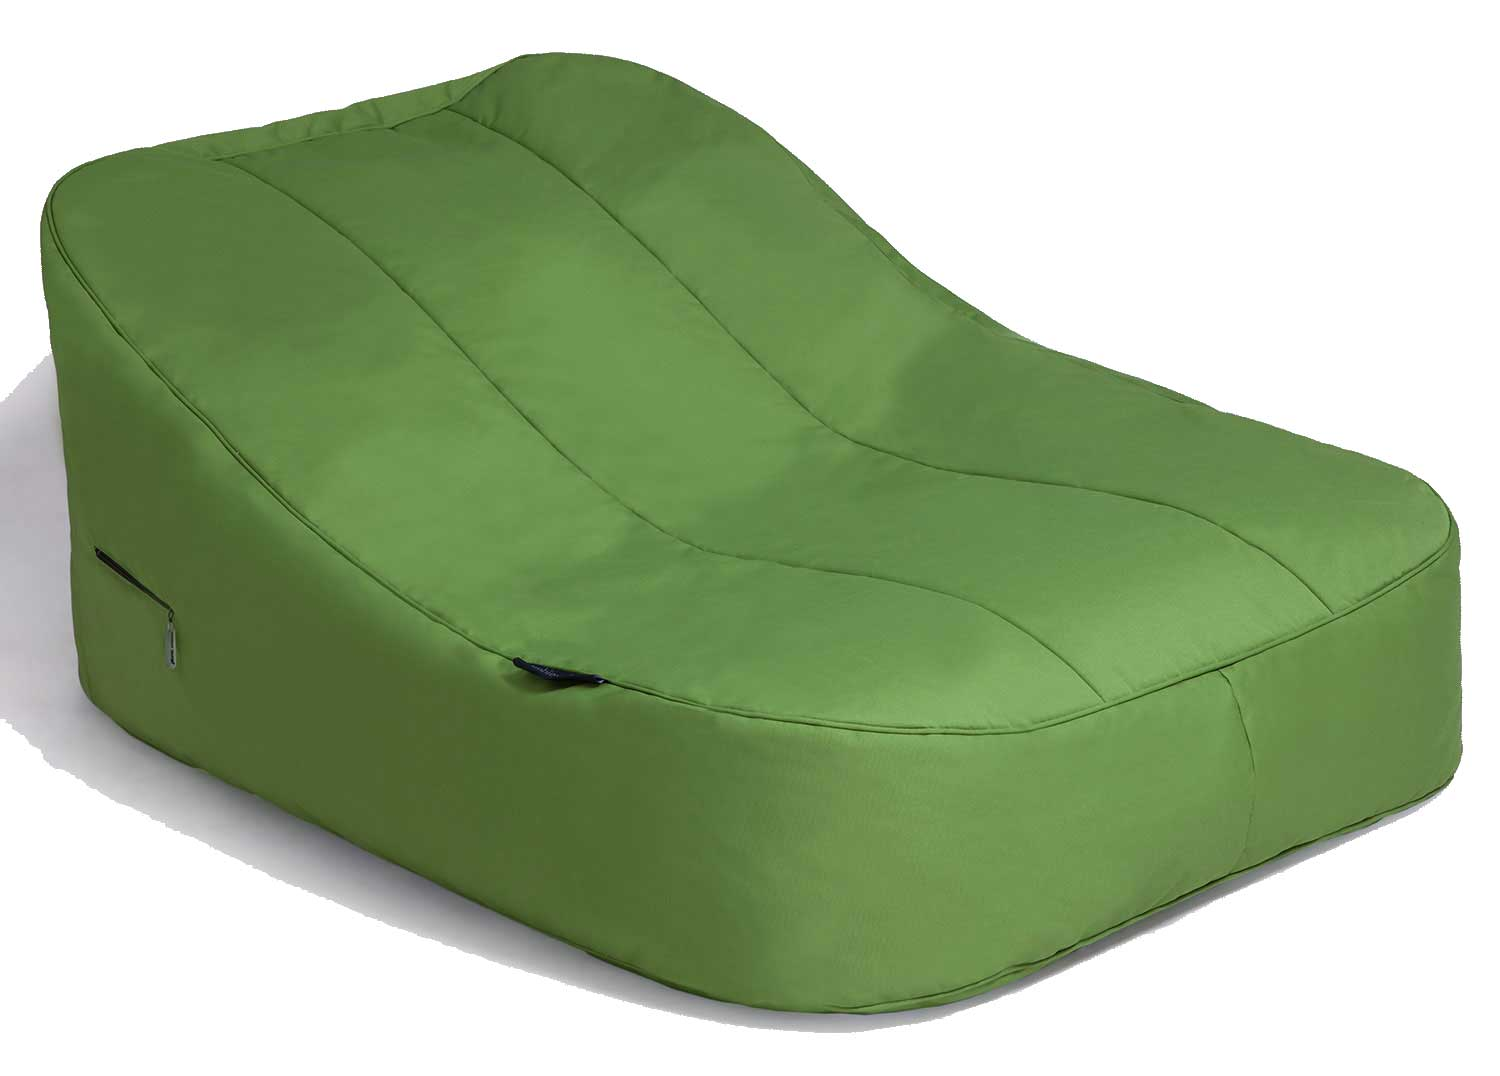 Satellite Twin Sofa Rainforest Retreat1